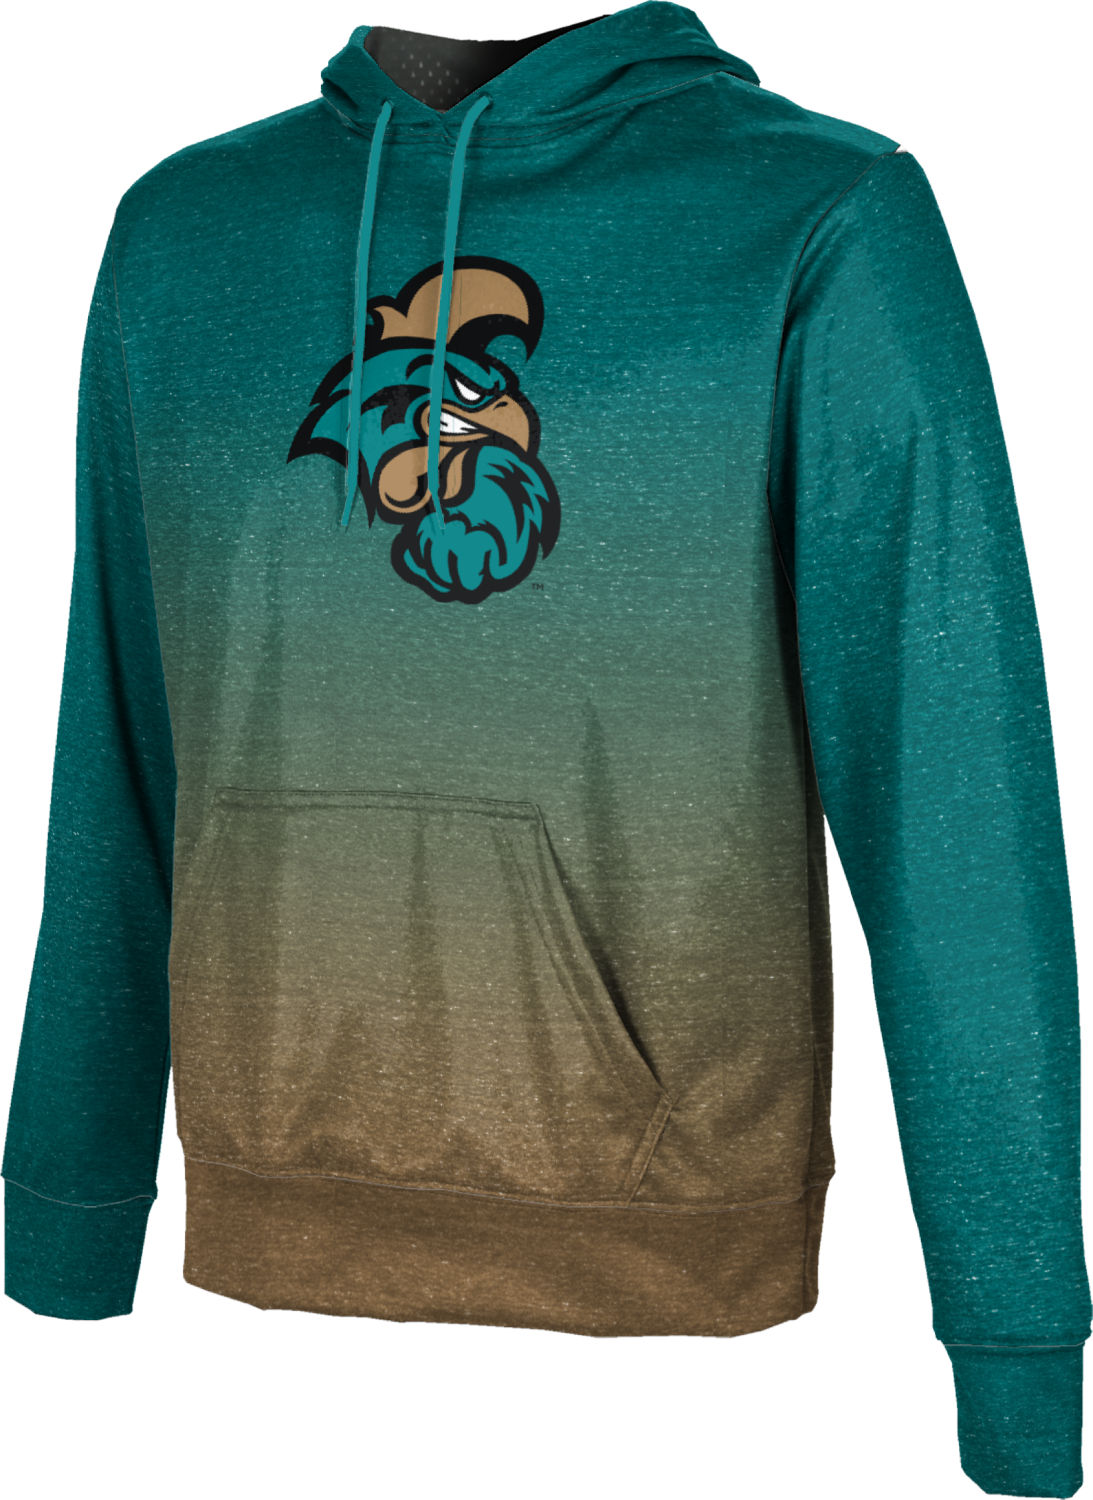 ProSphere Boys' Coastal Carolina University Ombre Pullover Hoodie